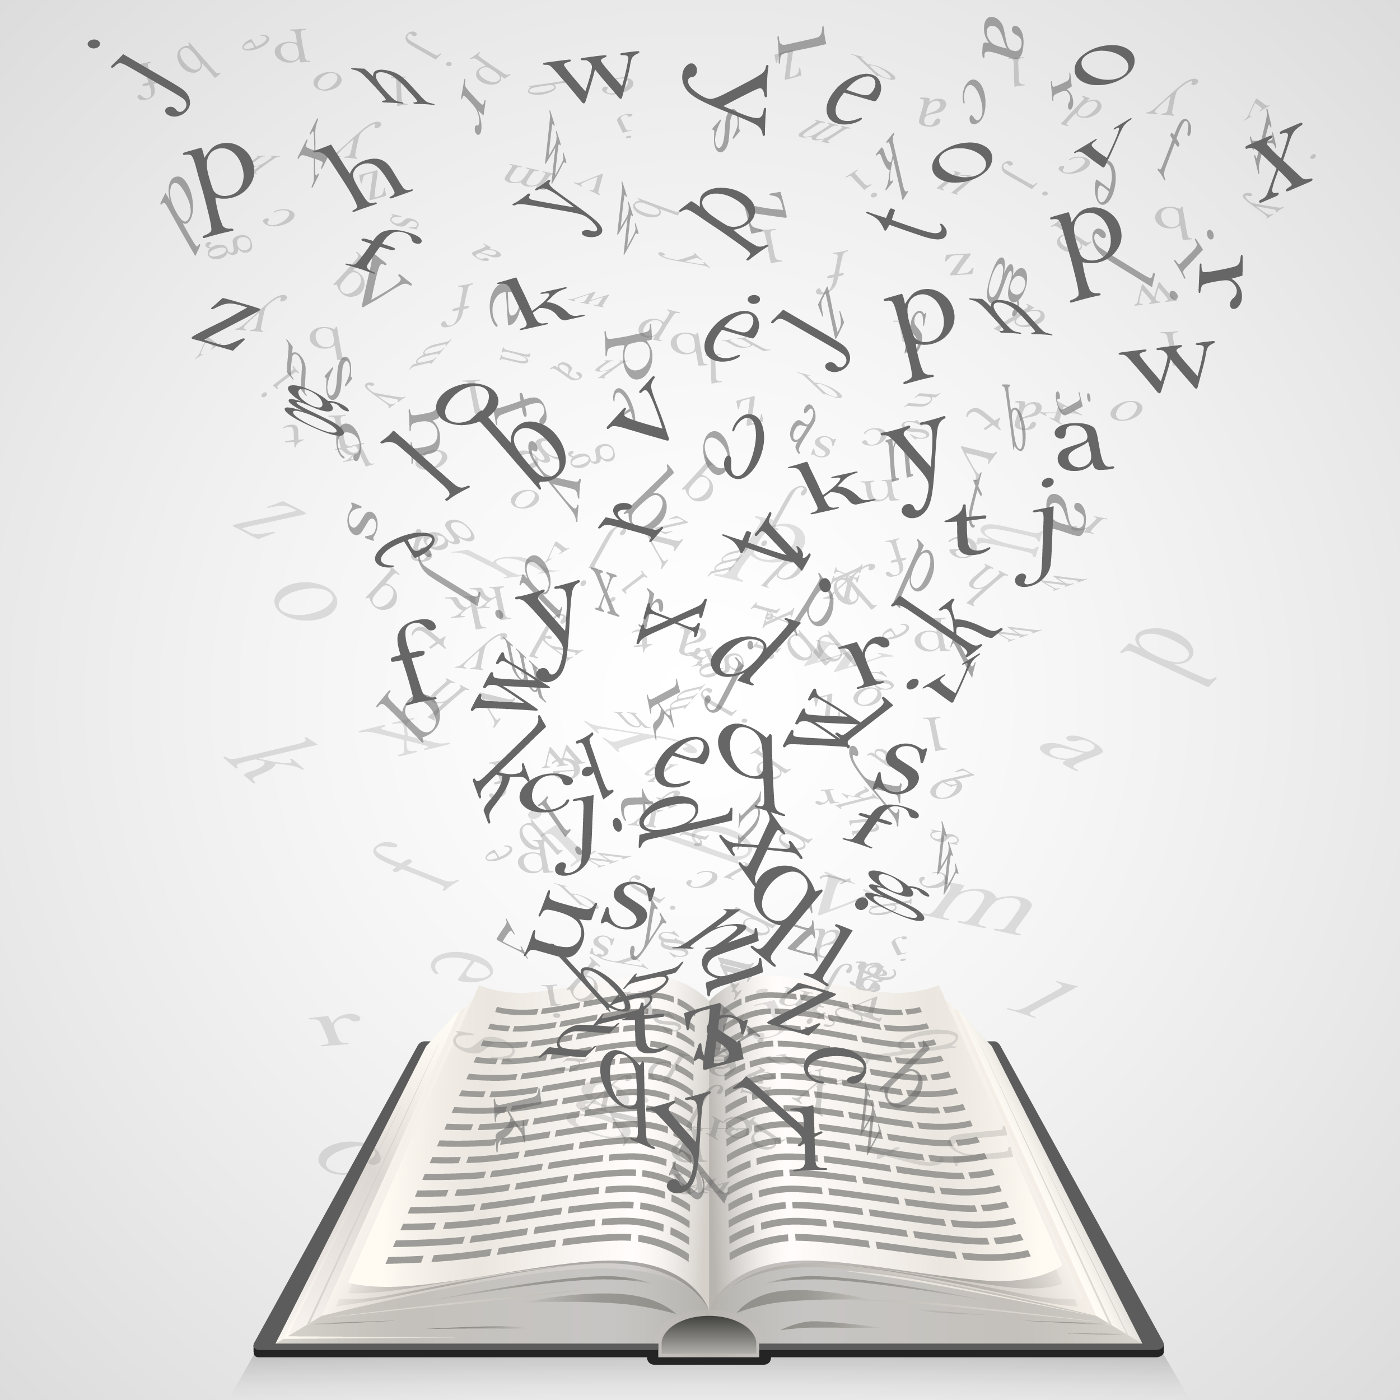 stock-illustration-71478377-book-with-flying-letters